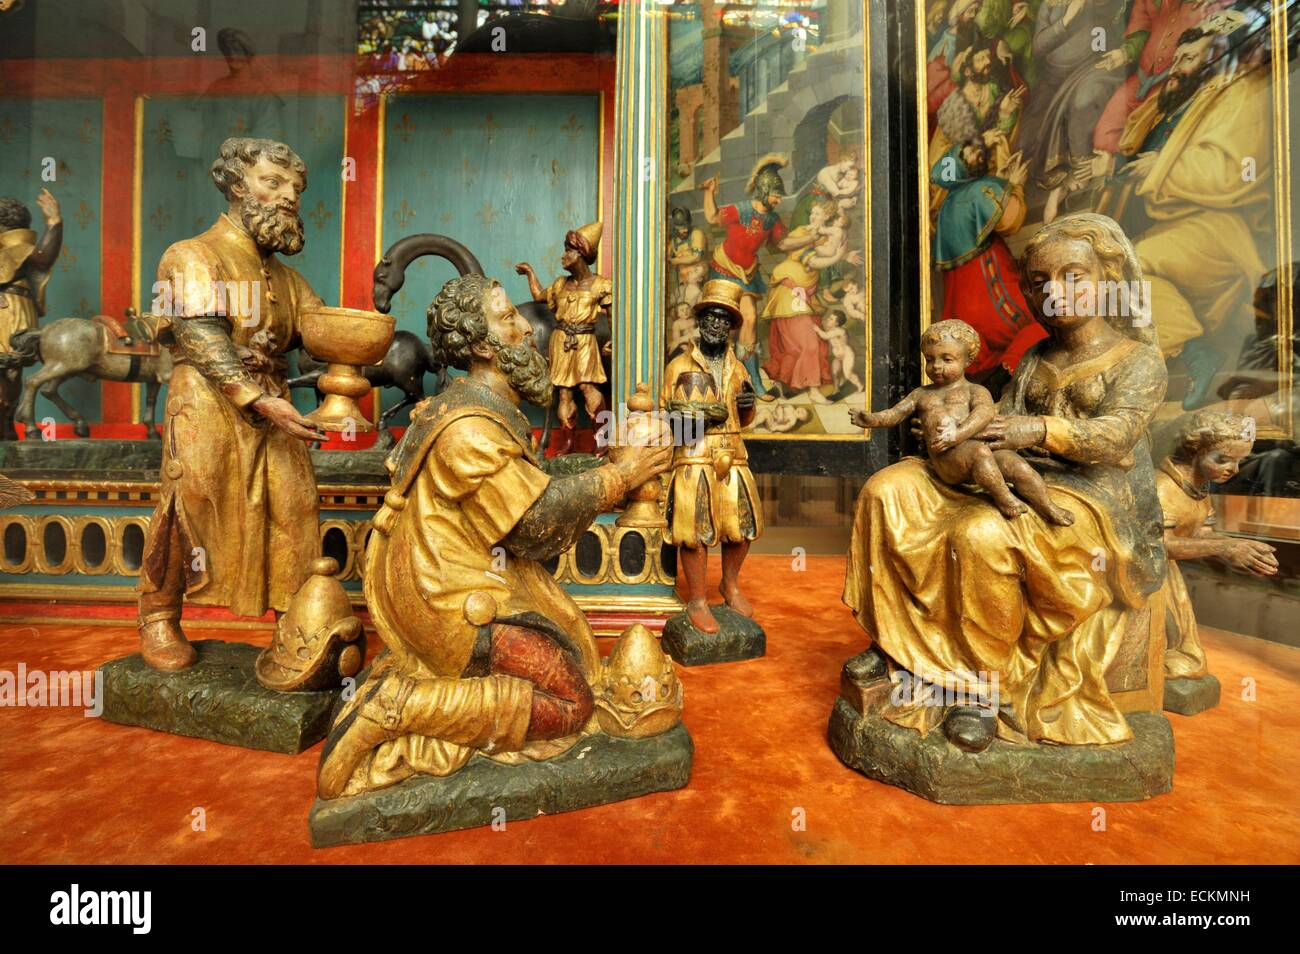 France, Aube, Chaource, Saint Jean Baptiste church, chapel of Paradise, creche of the 16th century with 22 statues - Stock Image